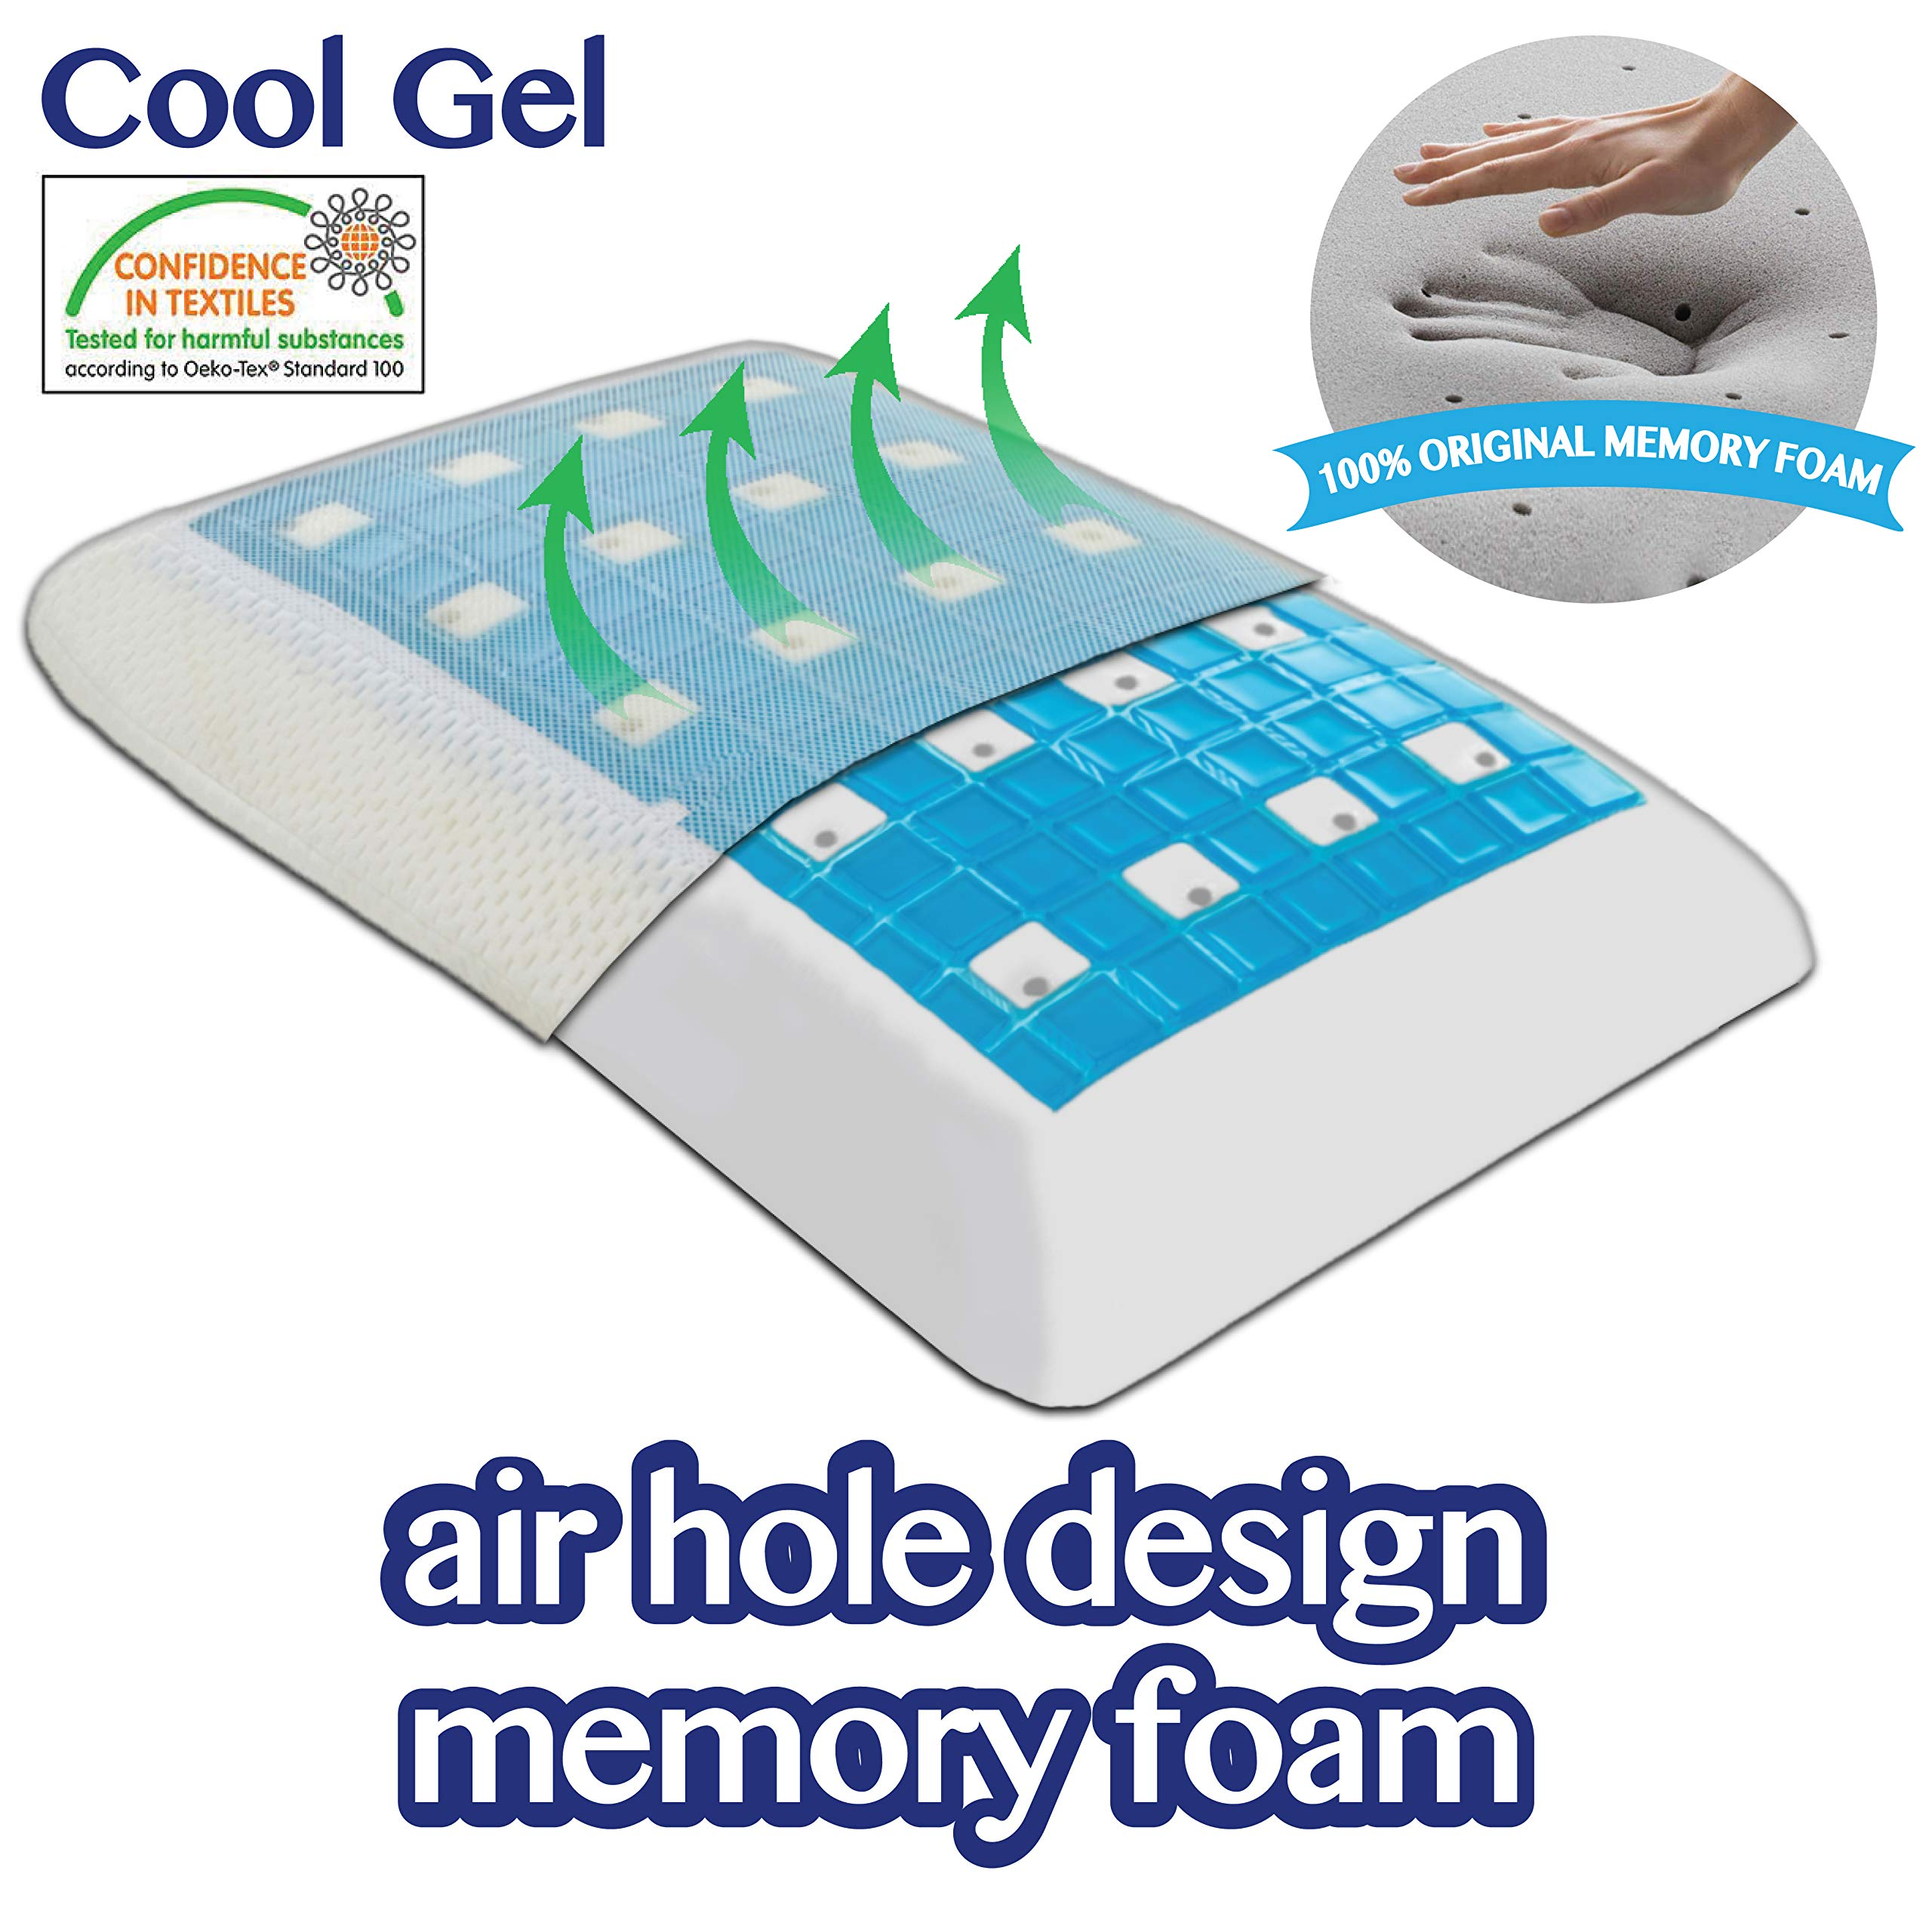 Comfyt Cooling Pillow - Gel Pillow - Ventilated Air Flow Design Memory Foam Pillow - Bamboo Pillow - Soft Removable Washable Bamboo Cover Orthopedic Pillow Cervical Pillow Bed Pillow Sleeping Pillow